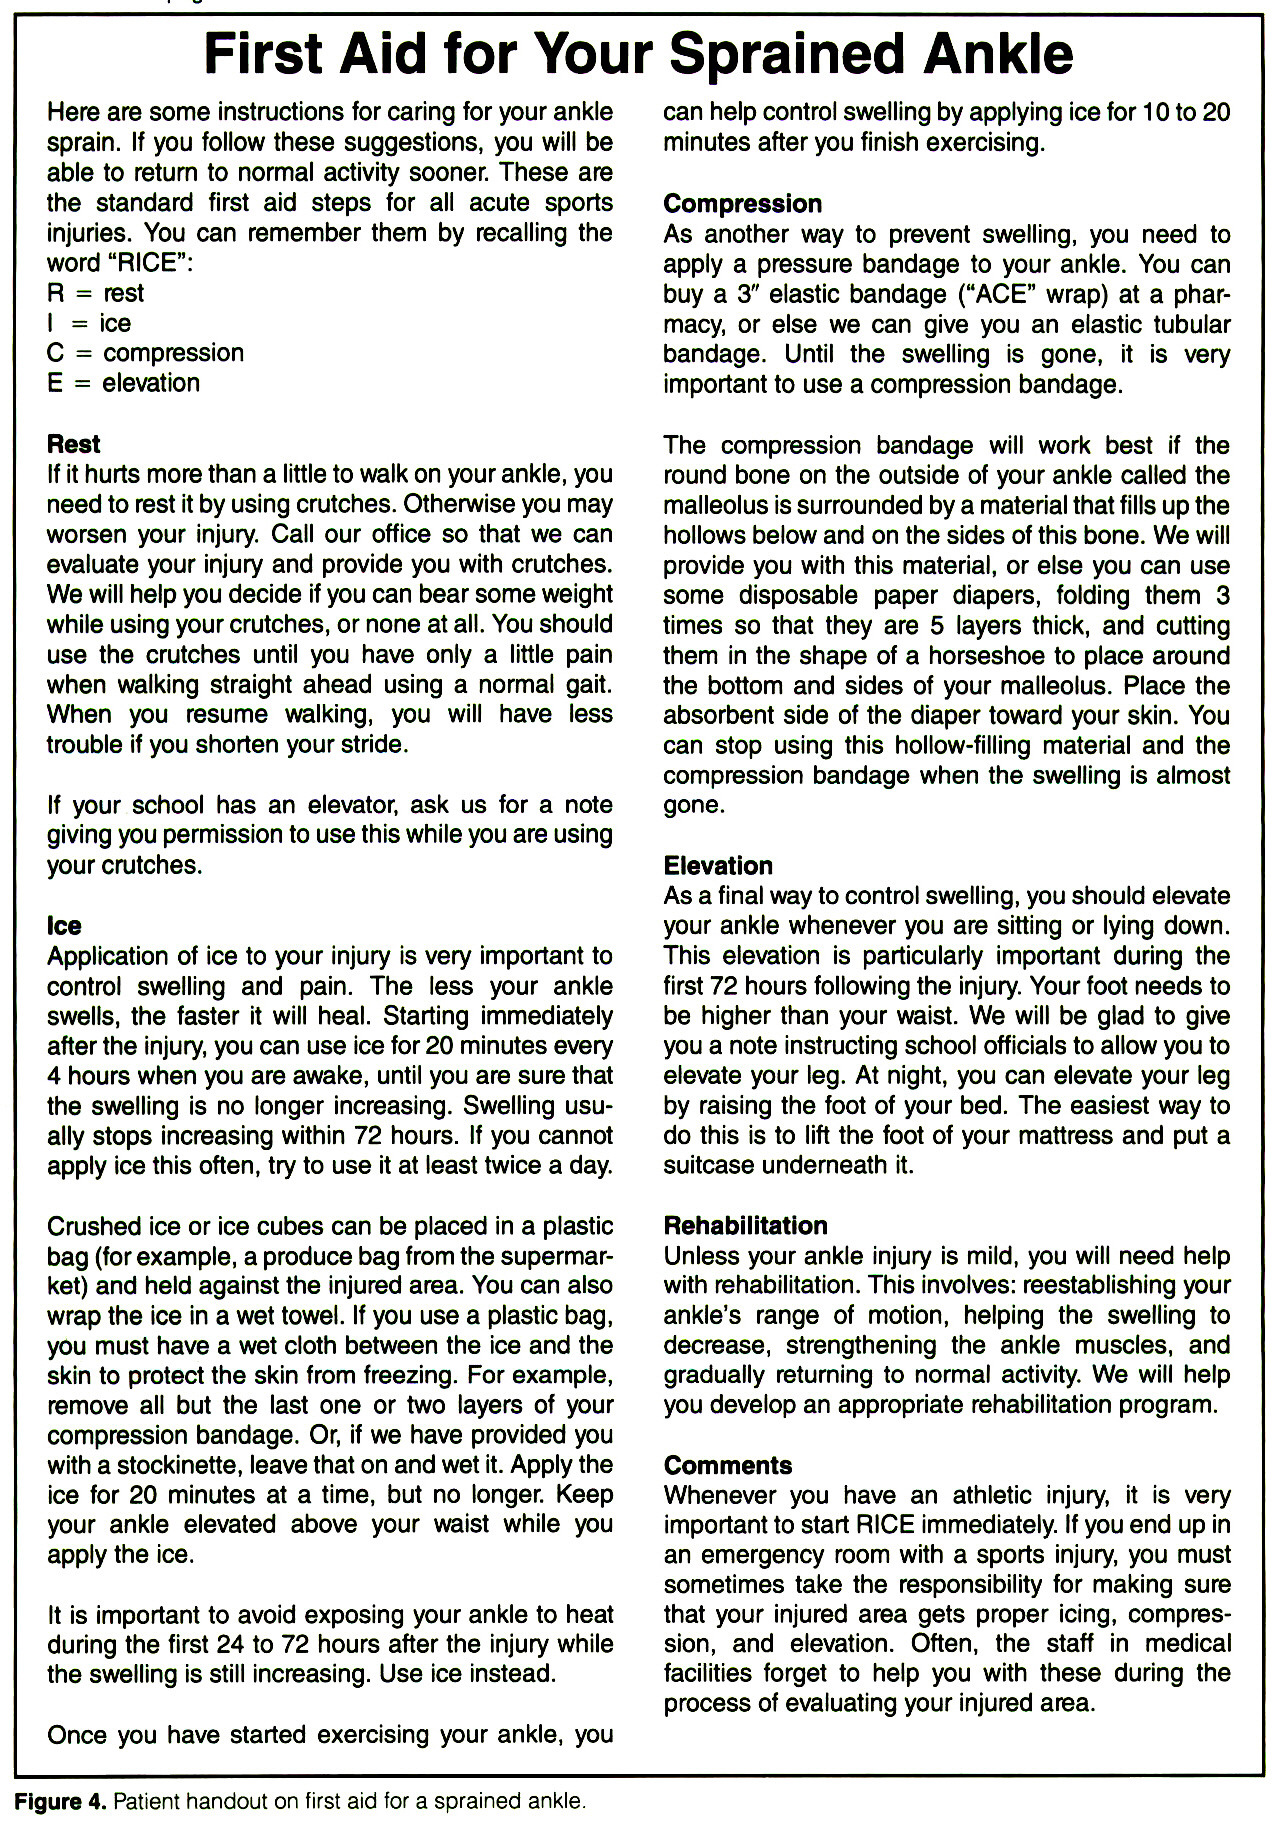 Figure 4. Patient handout on first aid for a sprained ankle.